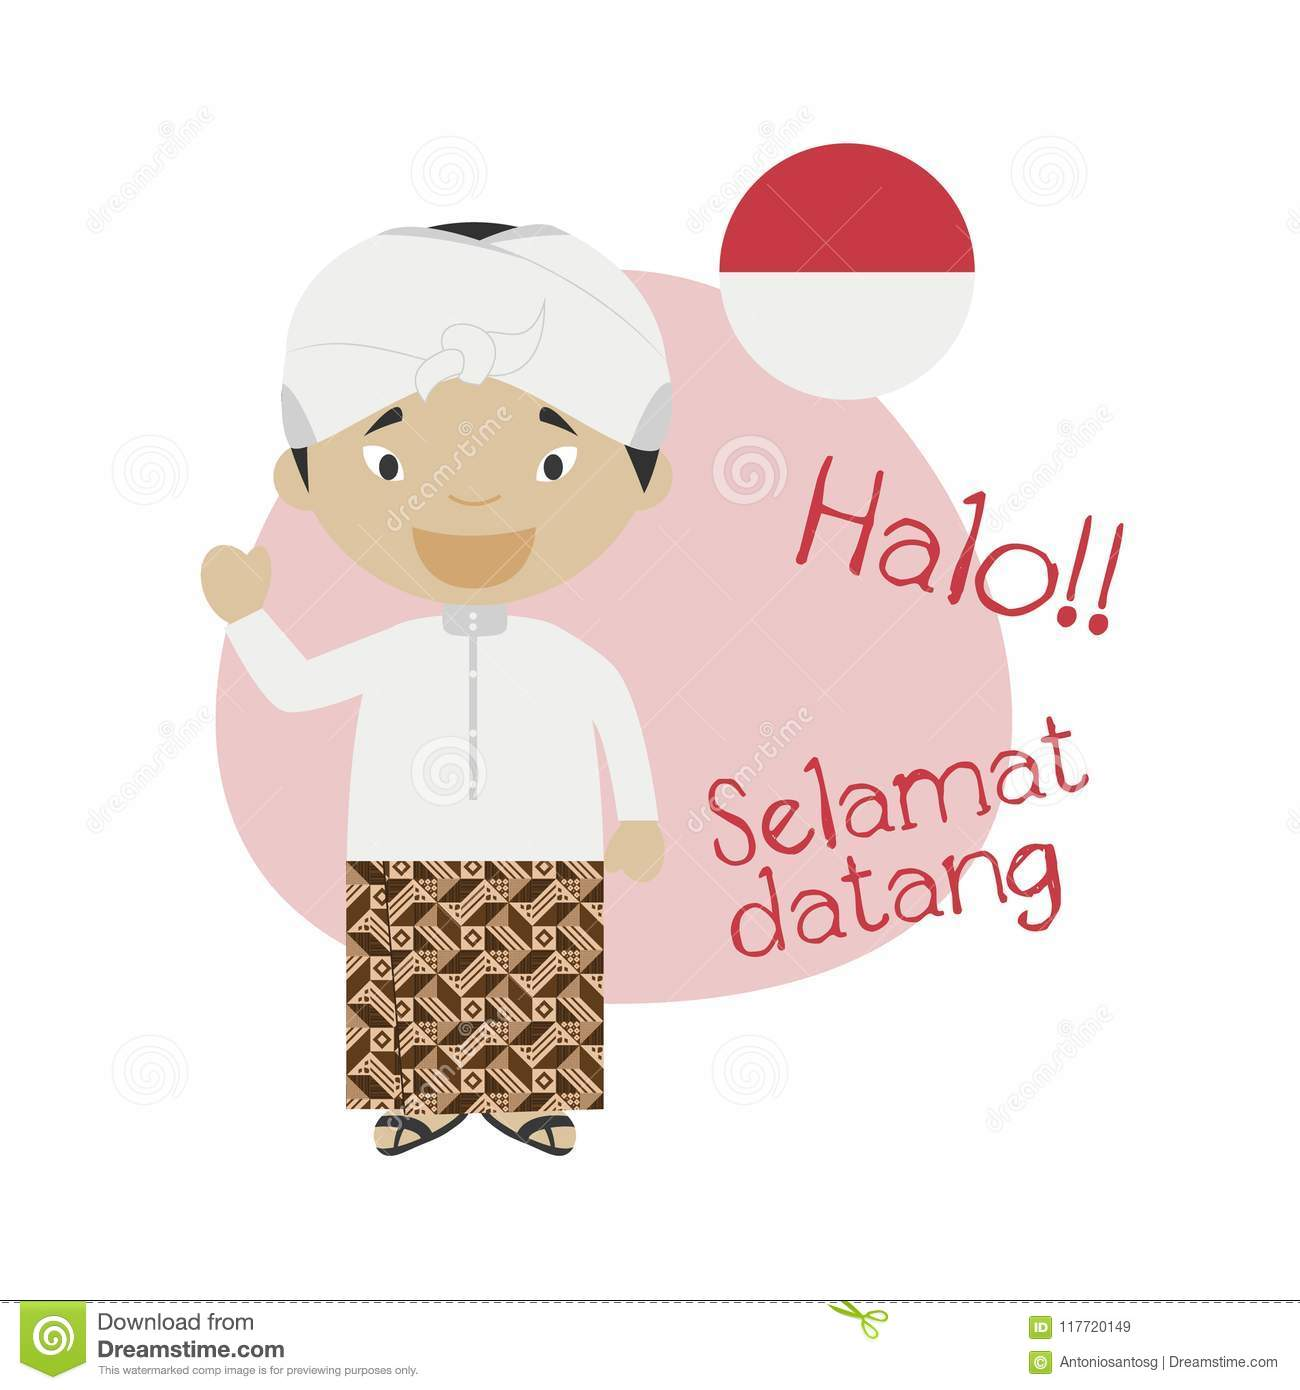 Vector illustration of cartoon character saying hello and welcome in vector illustration of cartoon character saying hello and welcome in indonesian language m4hsunfo